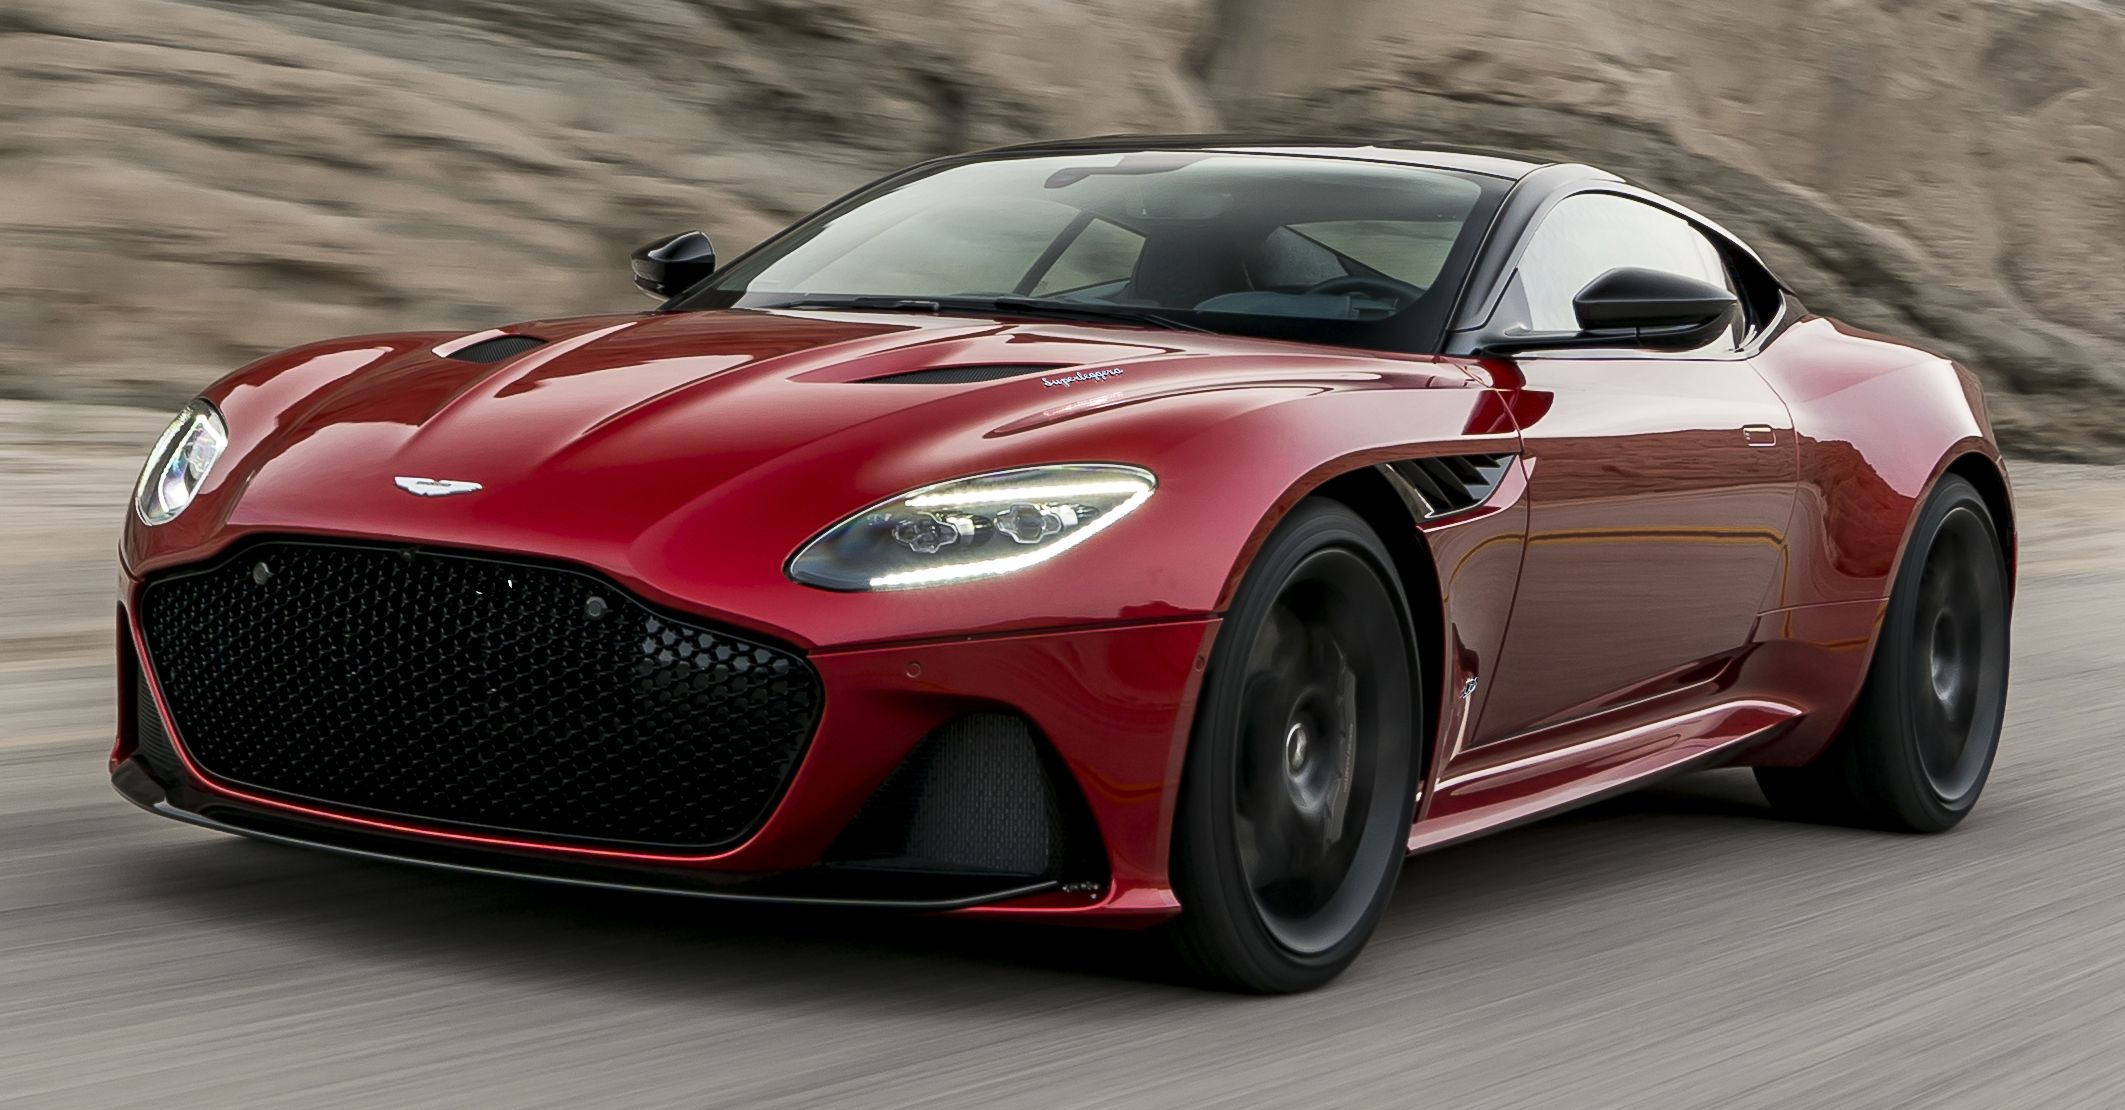 Aston Martin DBS Superleggera unveiled with 715 hp